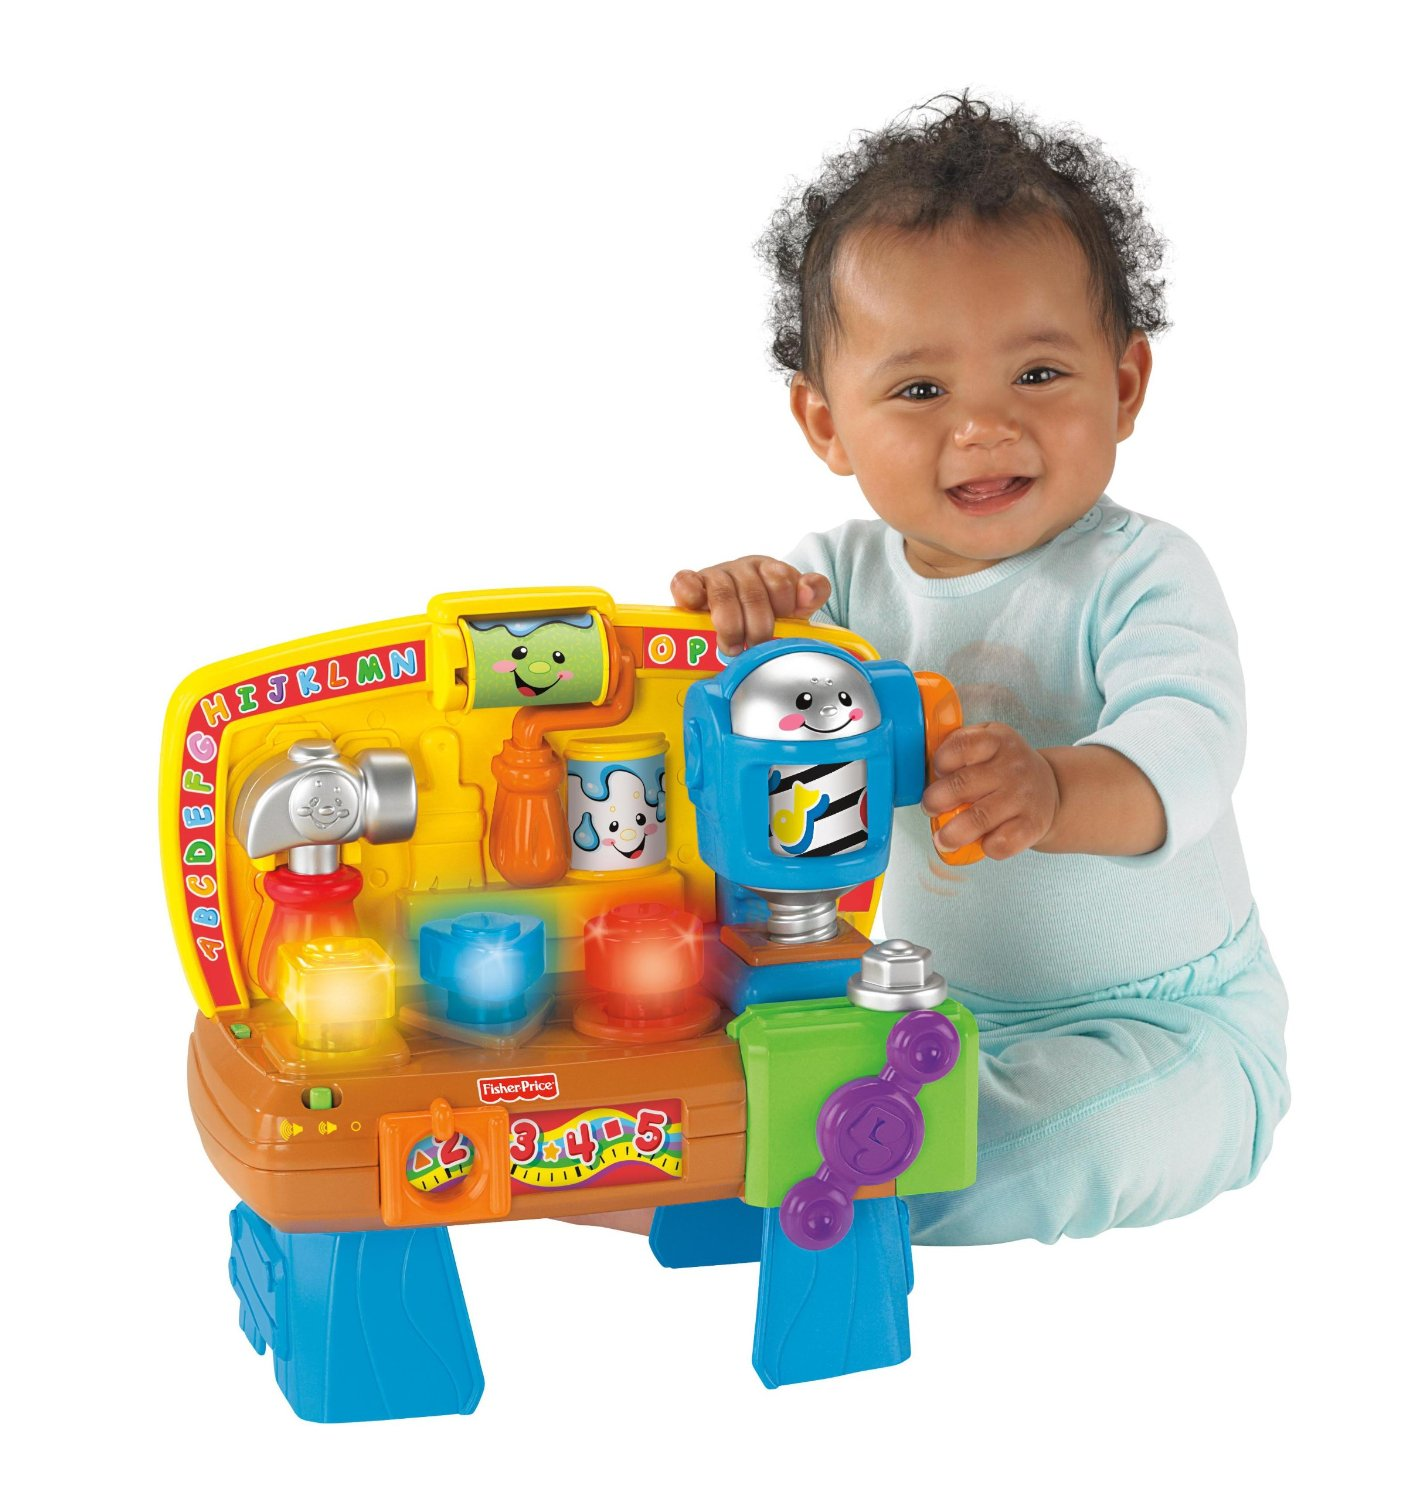 Educational Toys For 9 Month Old Babies : Best gifts ideas for one year old boys first christmas